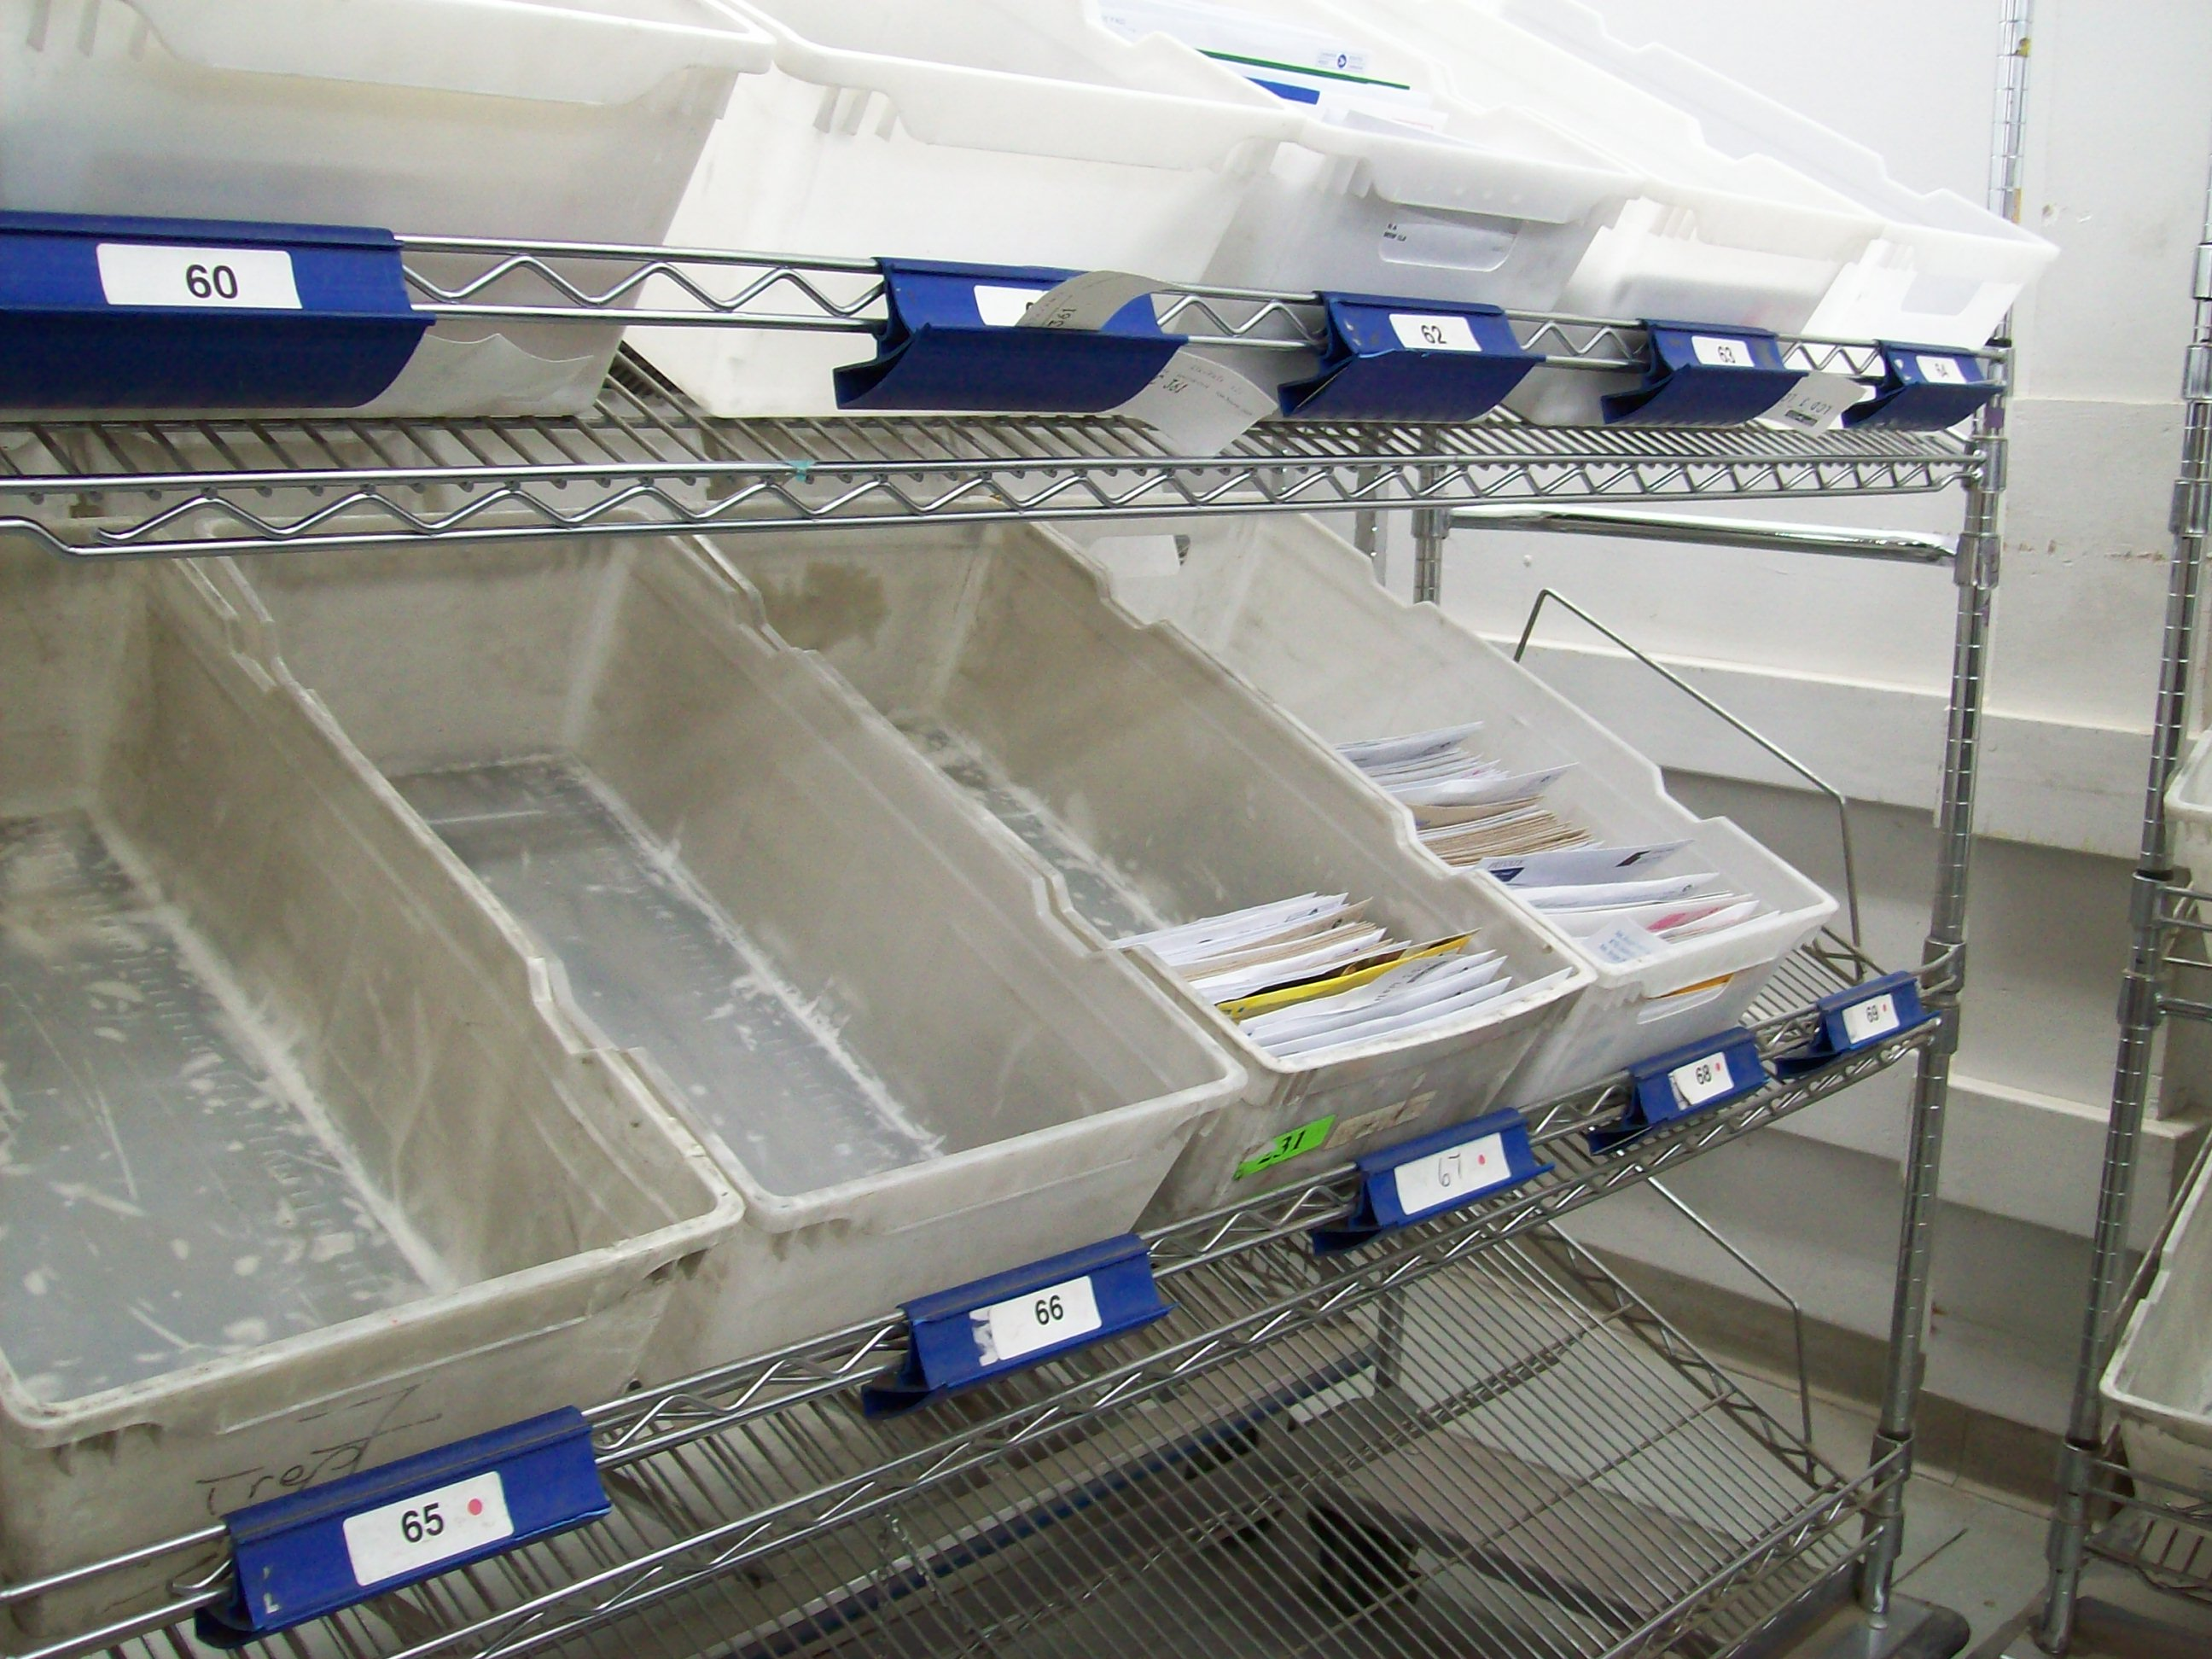 File:Canada Post bread rack.jpg - Wikimedia Commons